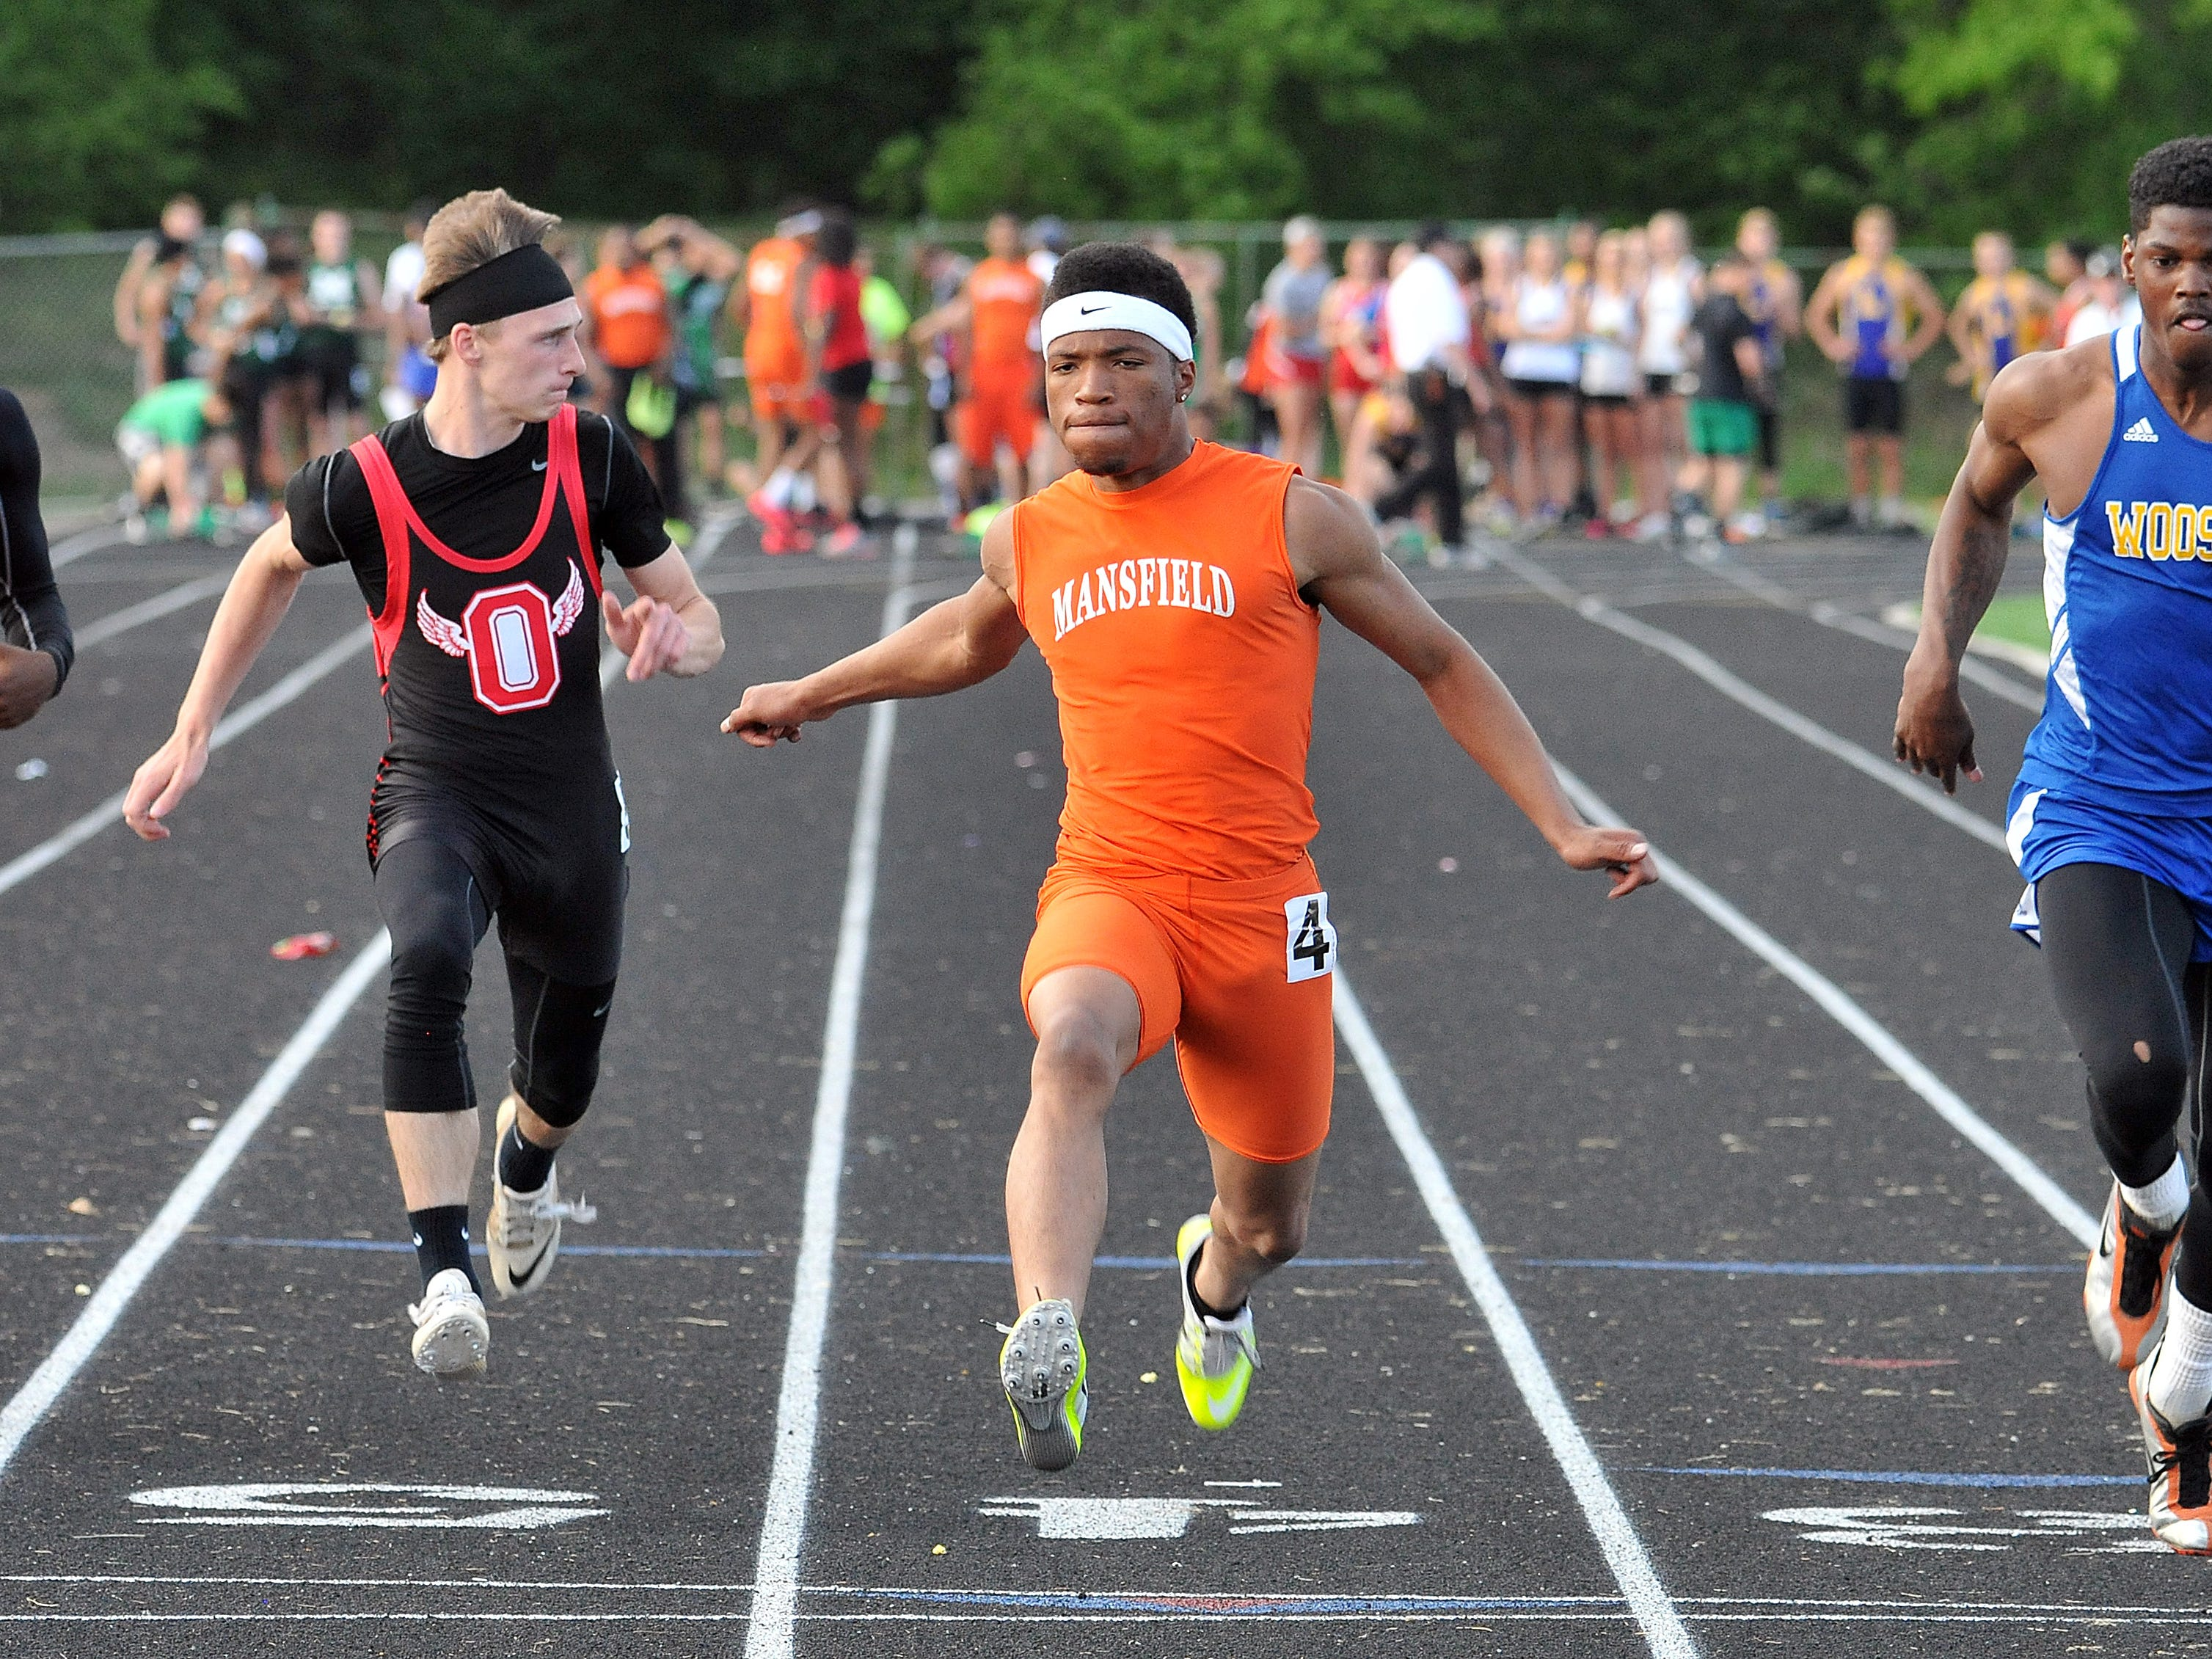 Mansfield Senior's Jacquez Wellington crosses the finish line during the boys 100 Meter Dash at Madison High School Friday.